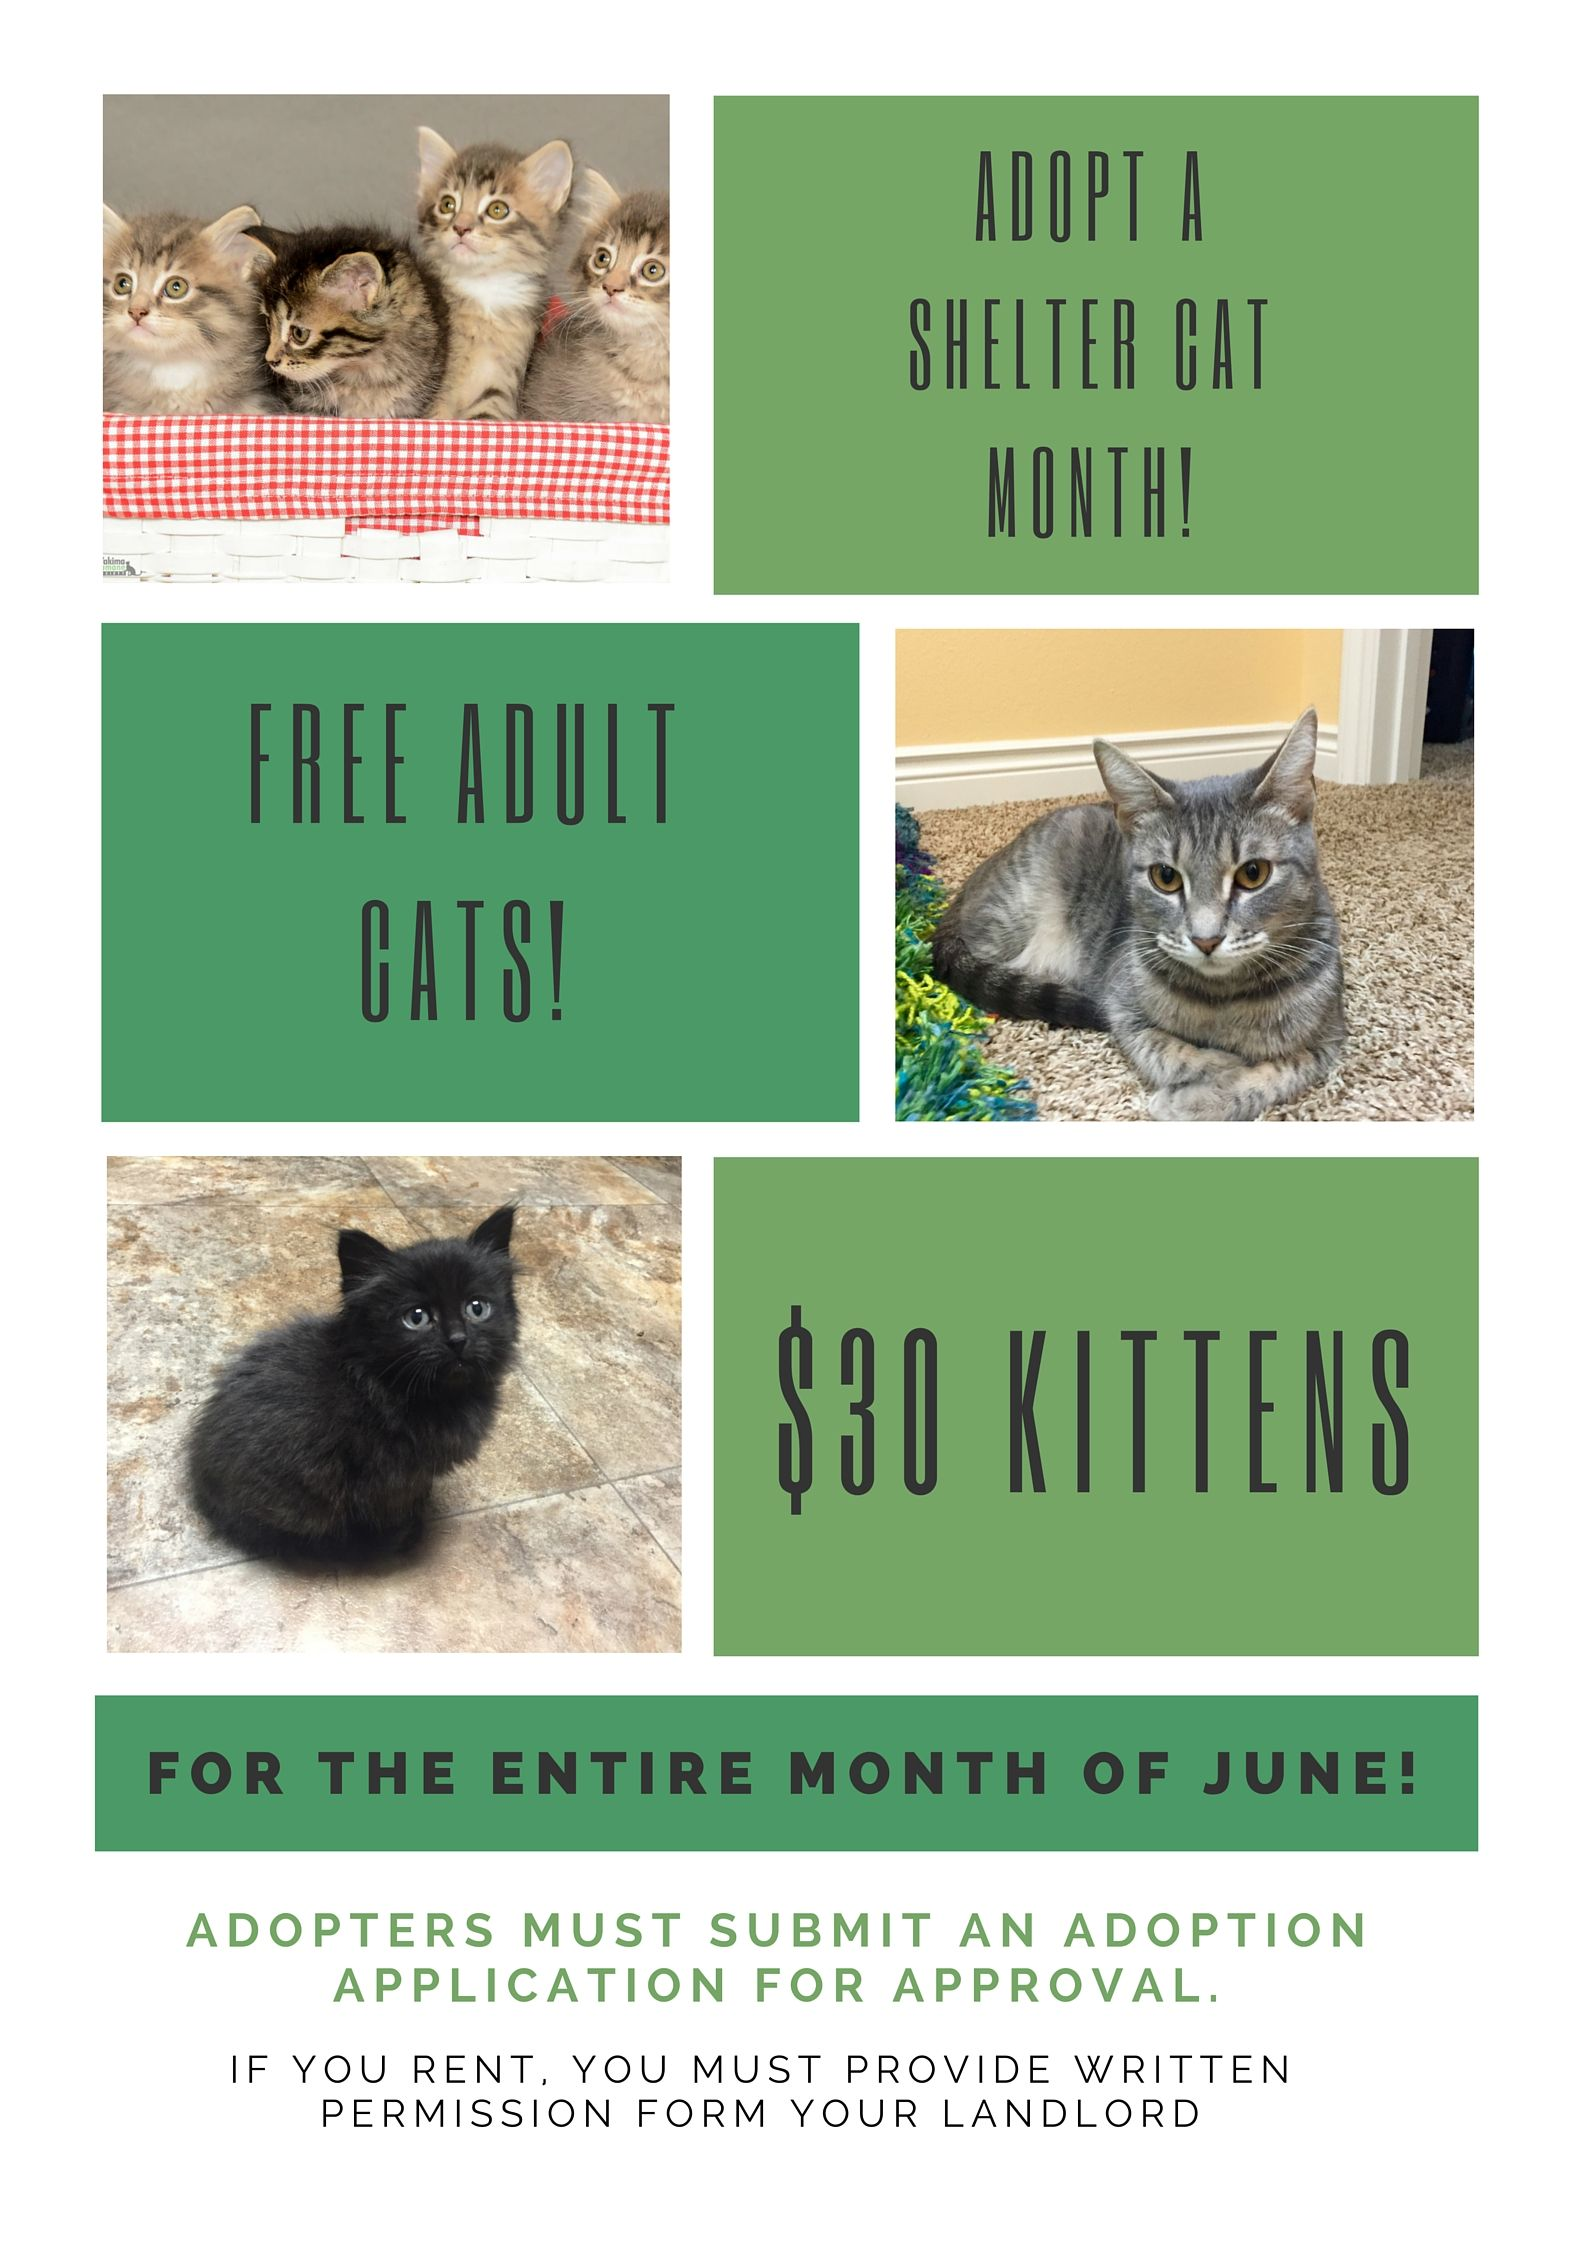 Free Kittens In Yakima : kittens, yakima, Special, Pricing, Event, Adopt, Shelter, Month, June., Yakima, Humane, Society, Your…, Society,, Shelter,, Animals